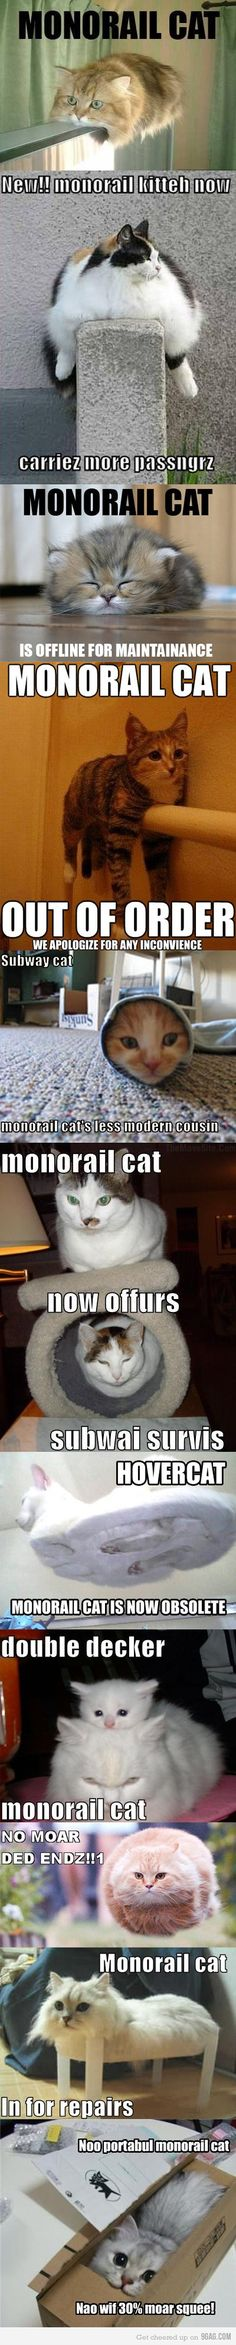 I don't know why, but I about died laughing while reading this... Especially at Hovercat.